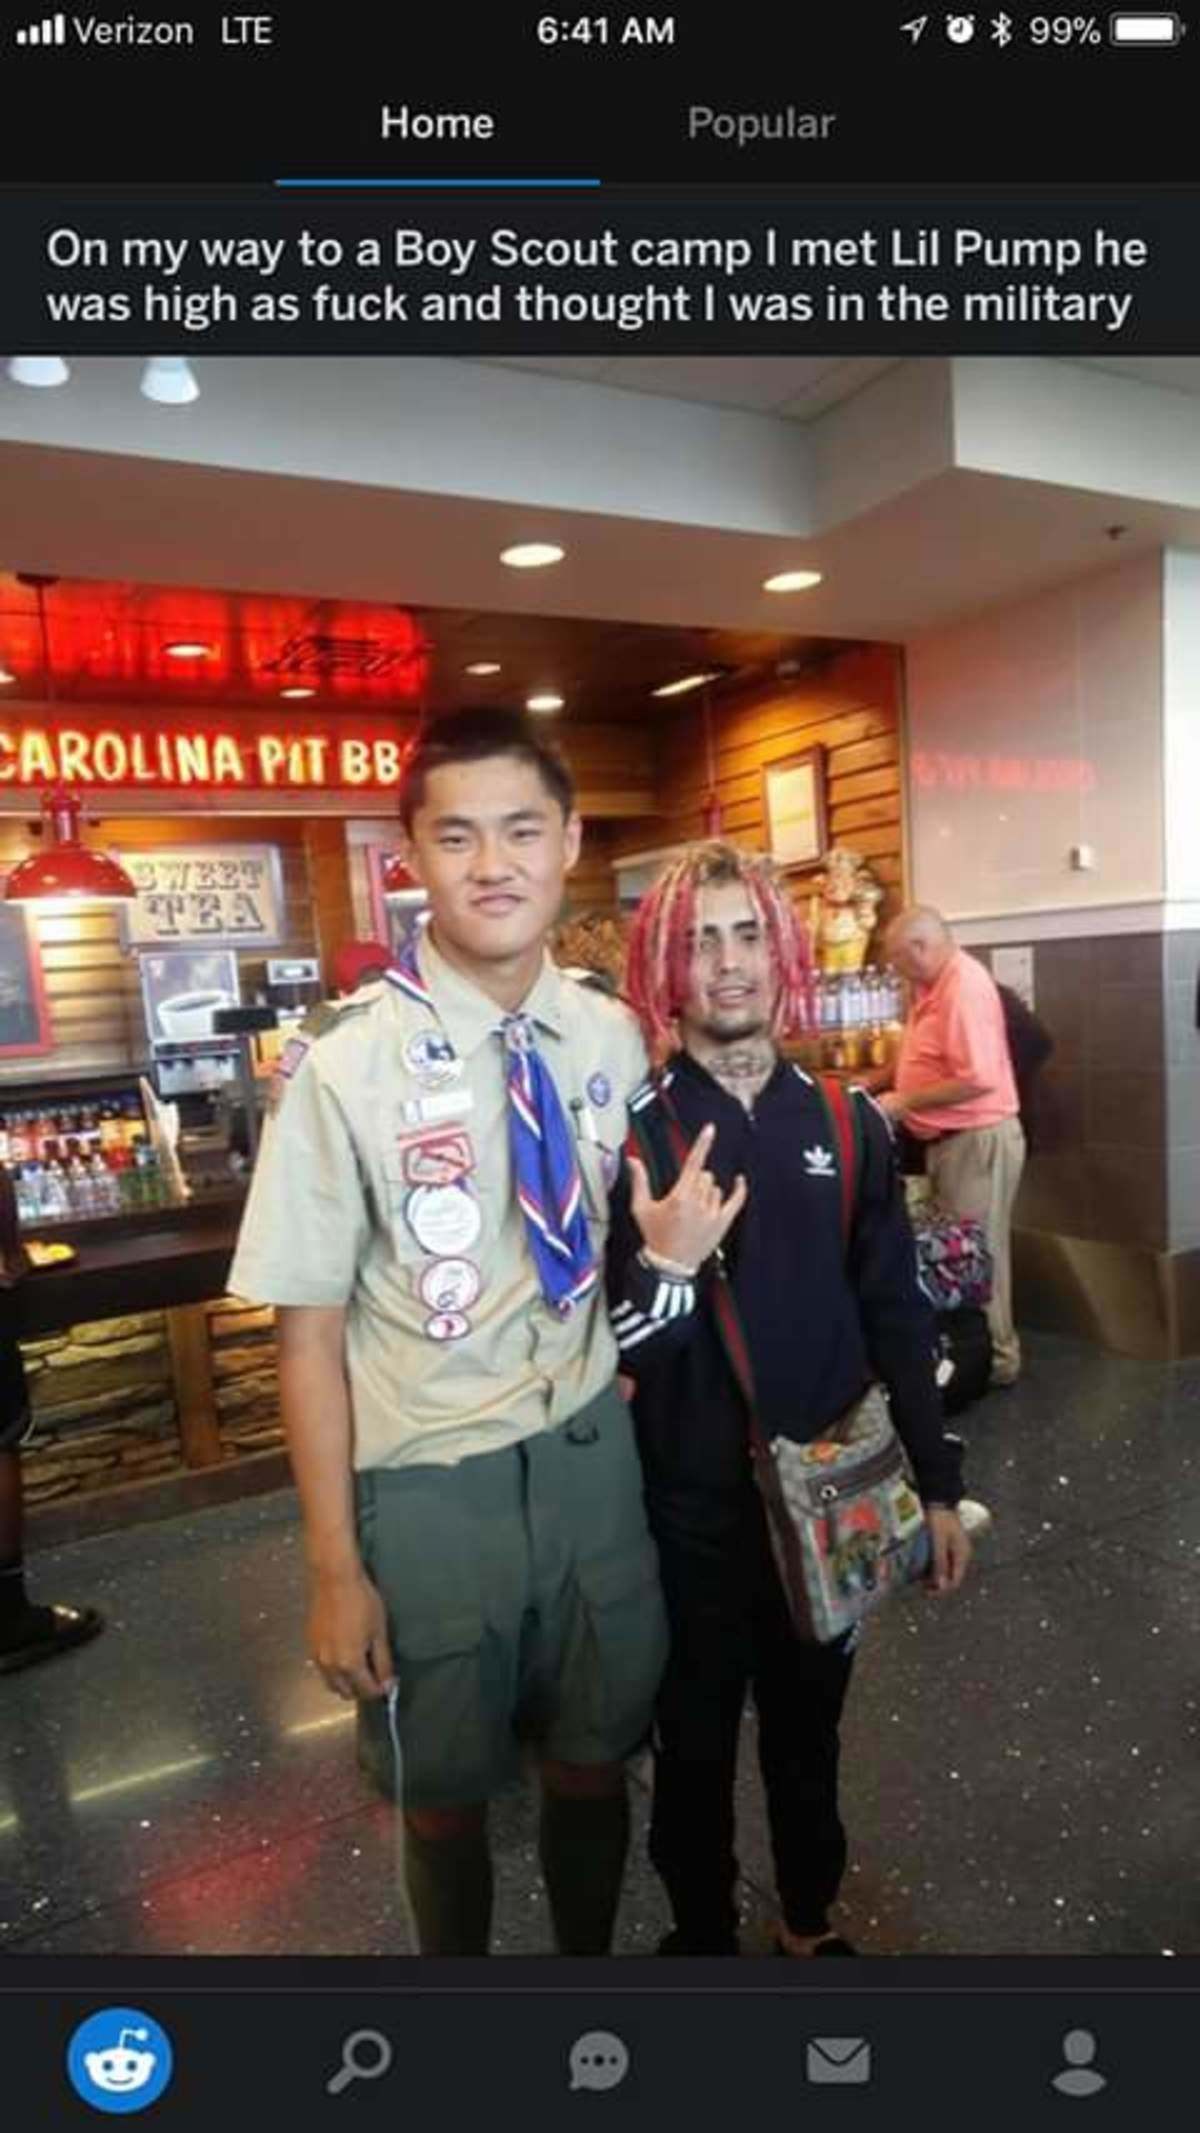 what a time to be alive. . all Verizon HE 6: 41 AM ' If t 99% - Home On my way to a Boy Scout camp I met Lil Pump he was high as fuck and thought I was in the m